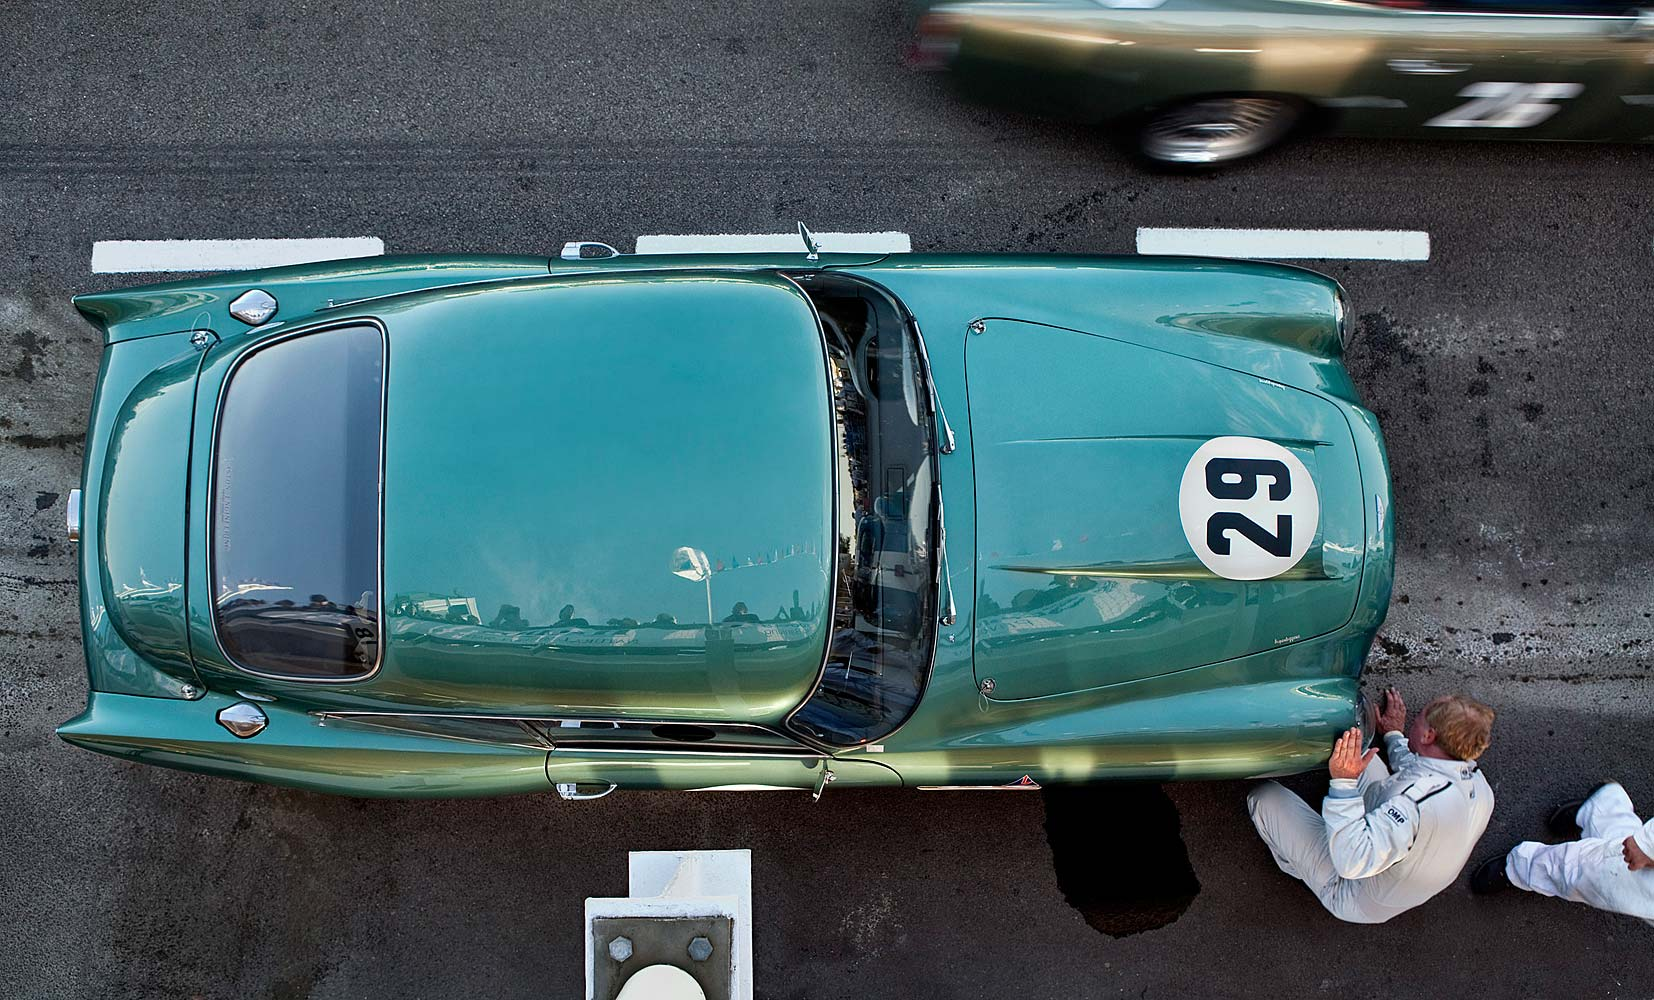 ASTON-MARTIN-DB4-GT-IN-THE-PIT-LANE